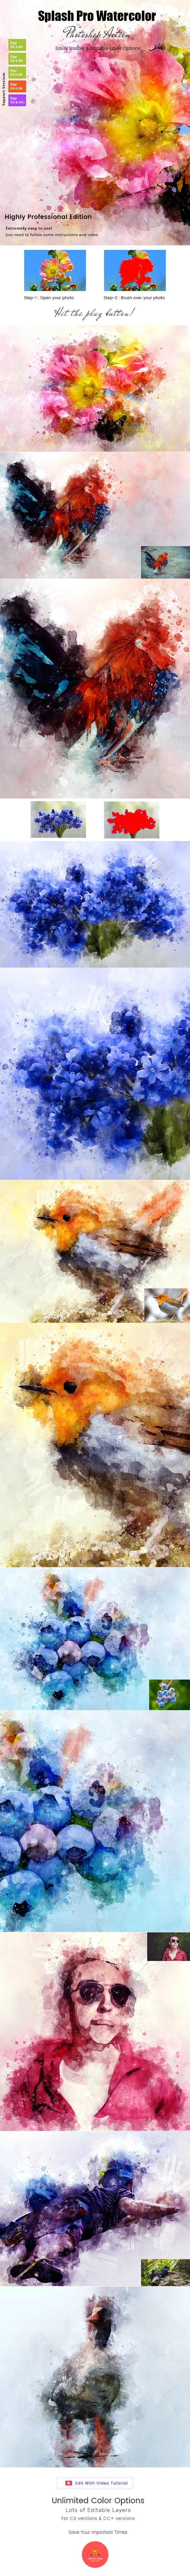 Splash Pro Watercolor Action - Photo Effects Actions